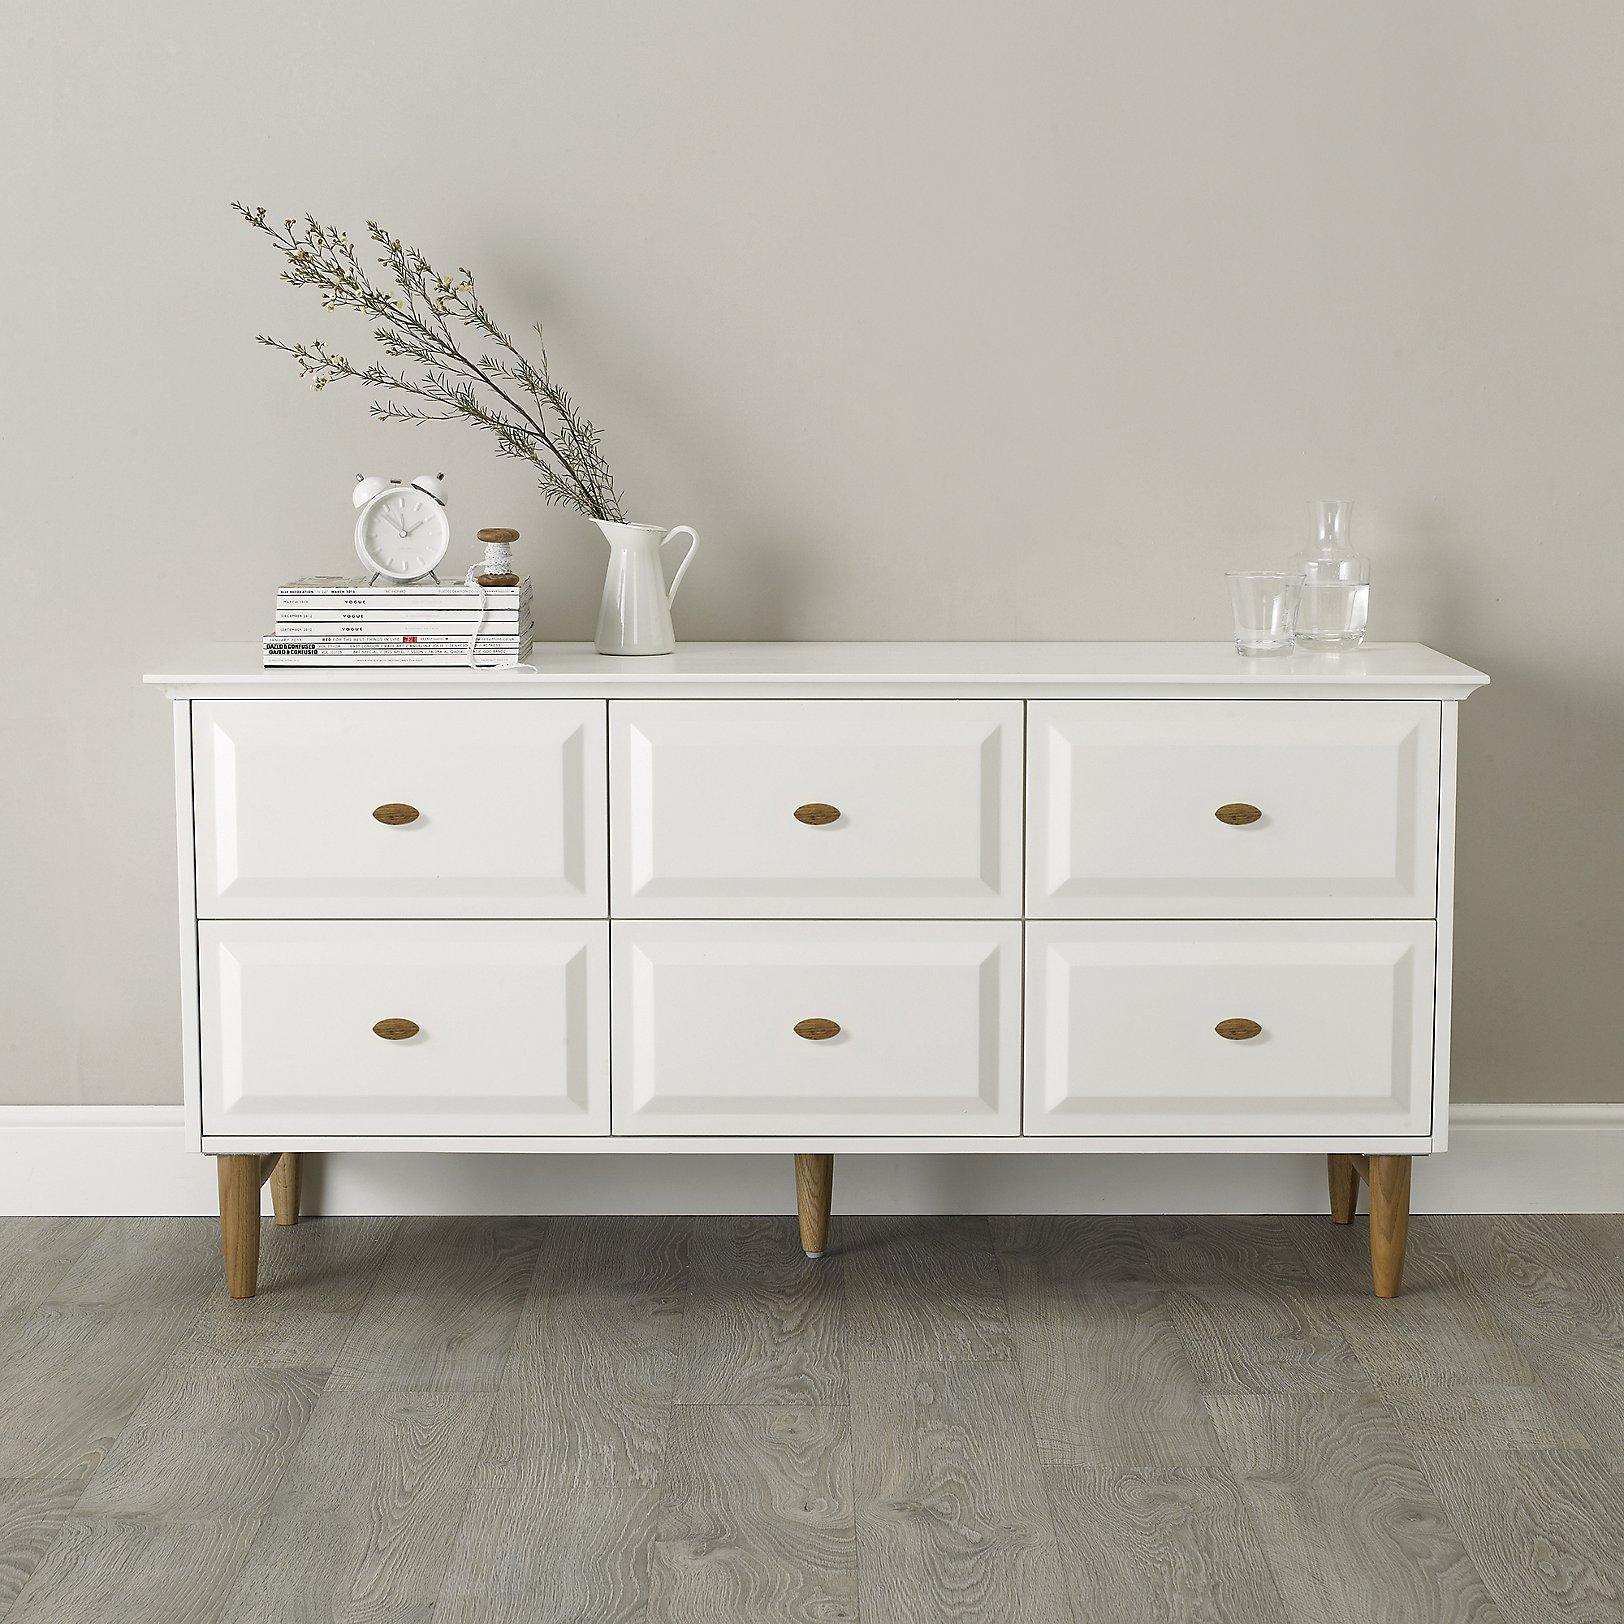 White and wood bedroom furniture furniture white wood for White wood bedroom furniture